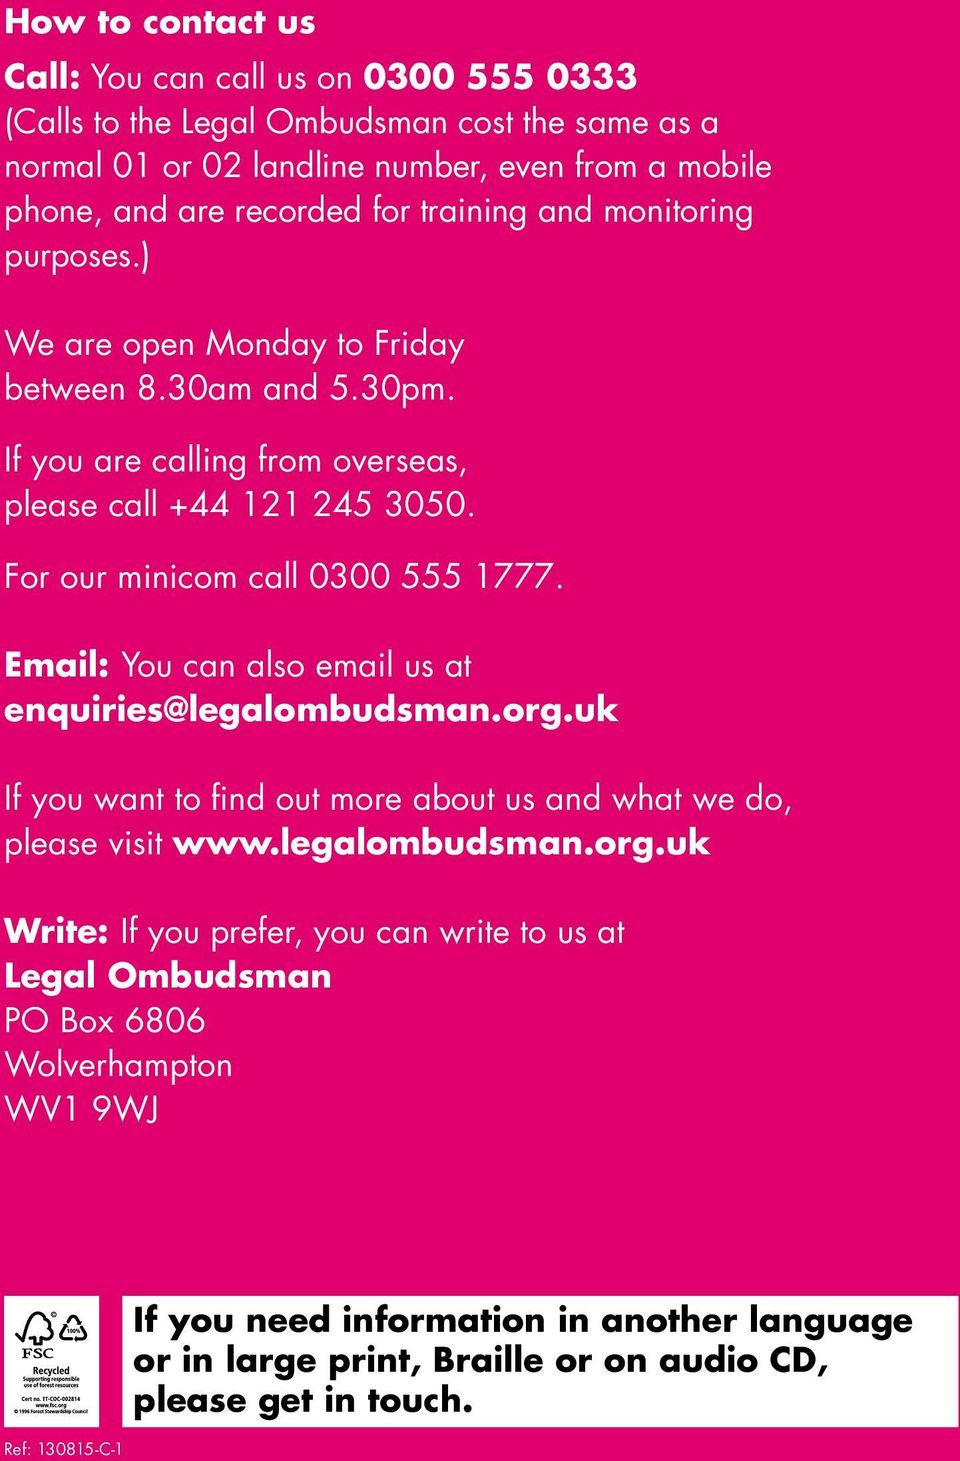 For our minicom call 0300 555 1777. Email: You can also email us at enquiries@legalombudsman.org.